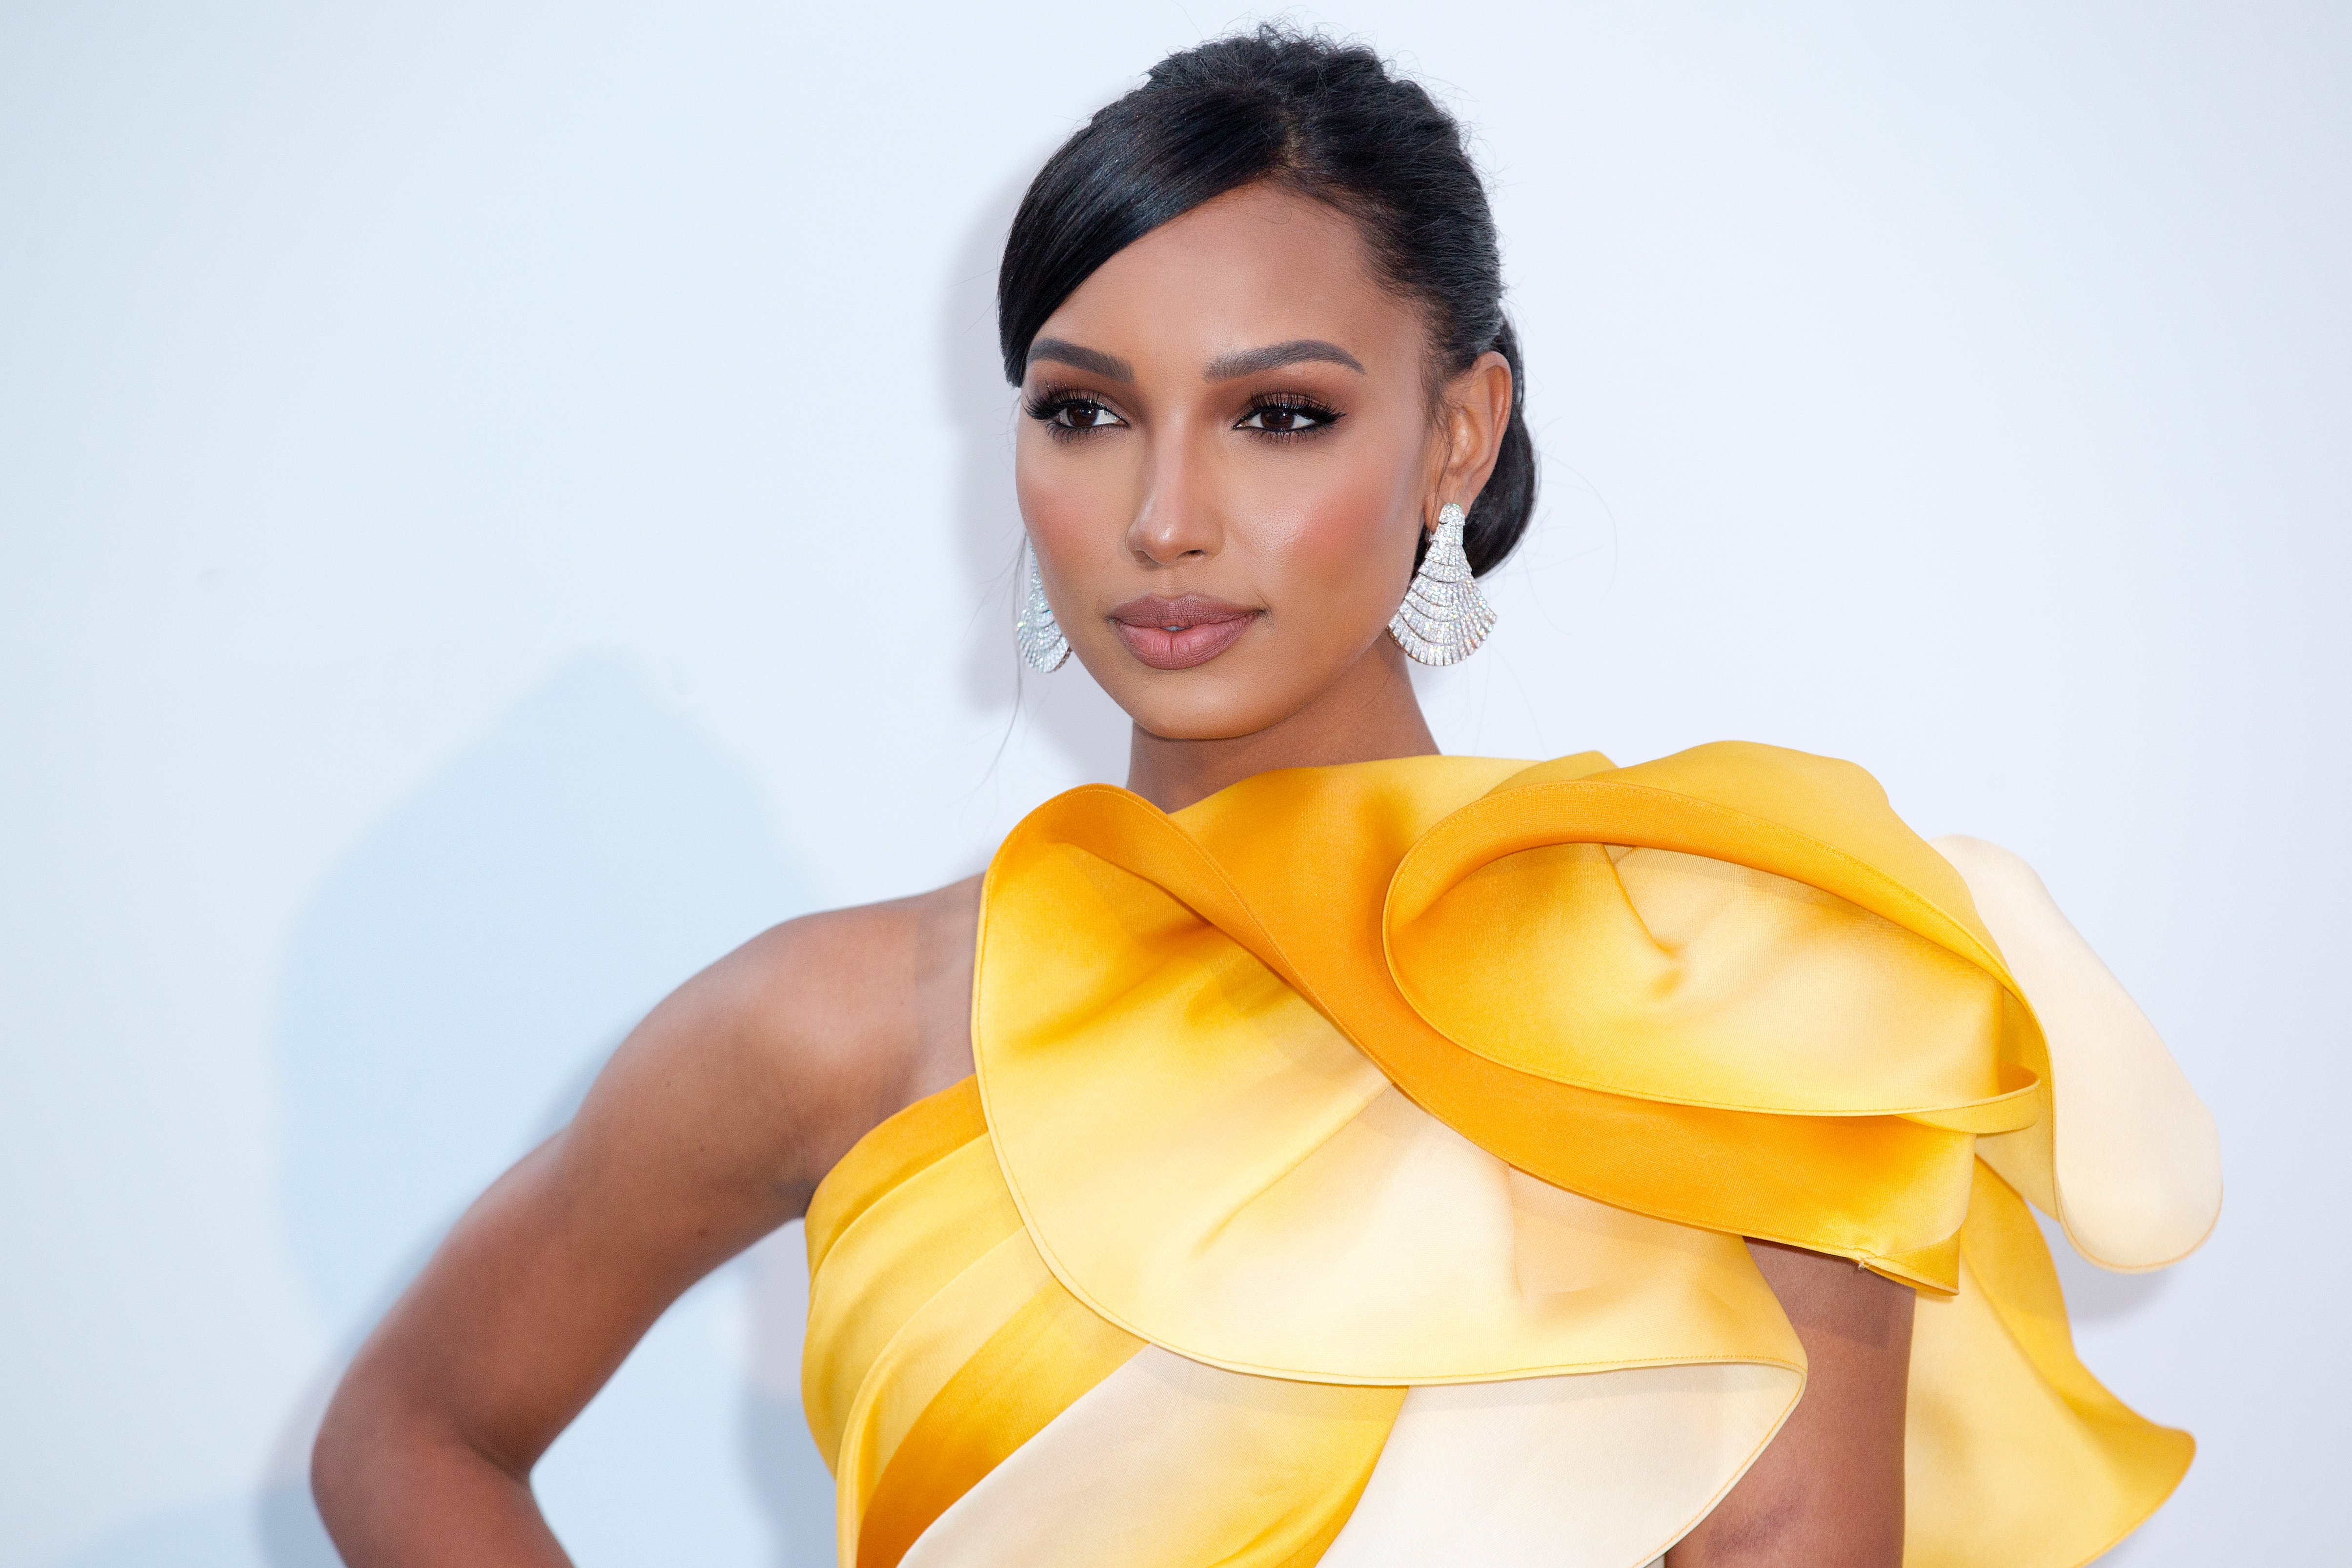 Jasmine Tookes attends the amfAR Cannes Gala 2019 at Hotel du Cap-Eden-Roc on May 23, 2019 in Cap d'Antibes, France   Photo: Shutterstock